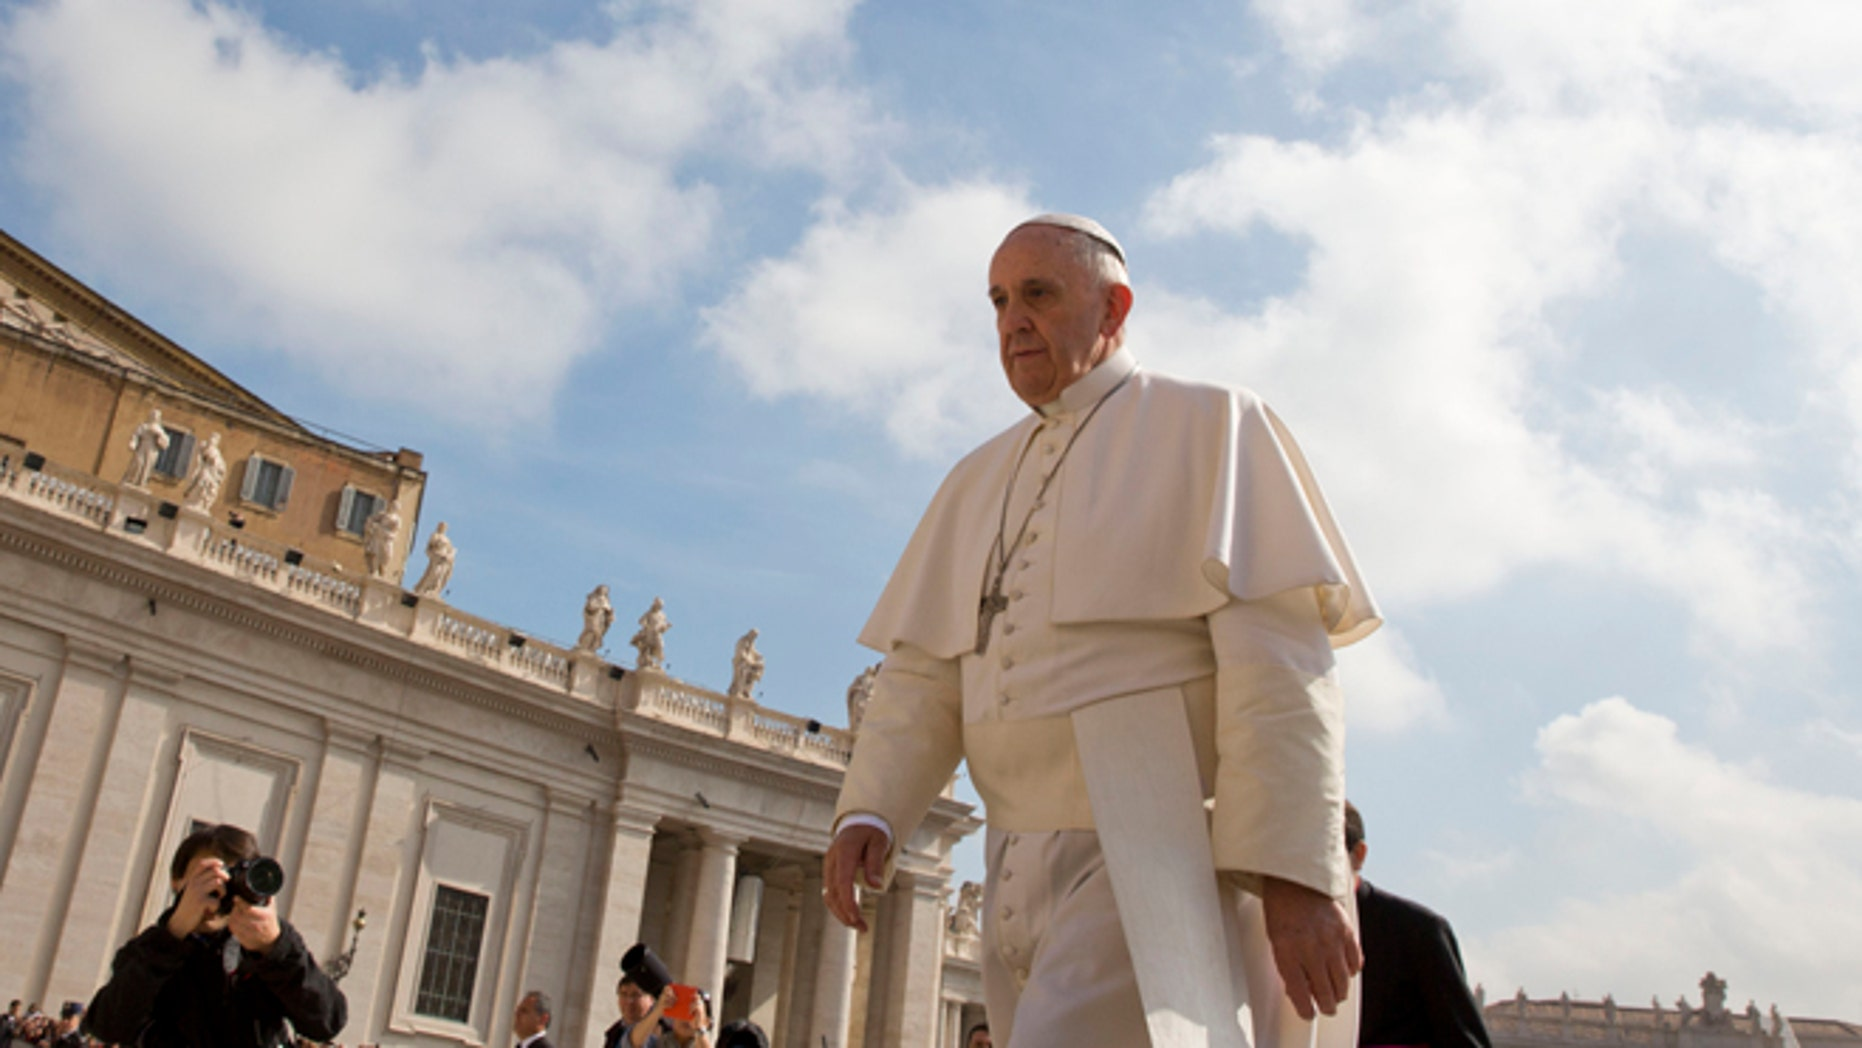 Pope Francis arrives for his weekly general audience in St. Peter's Square at the Vatican, Wednesday, April 29, 2015. (AP Photo/Alessandra Tarantino)